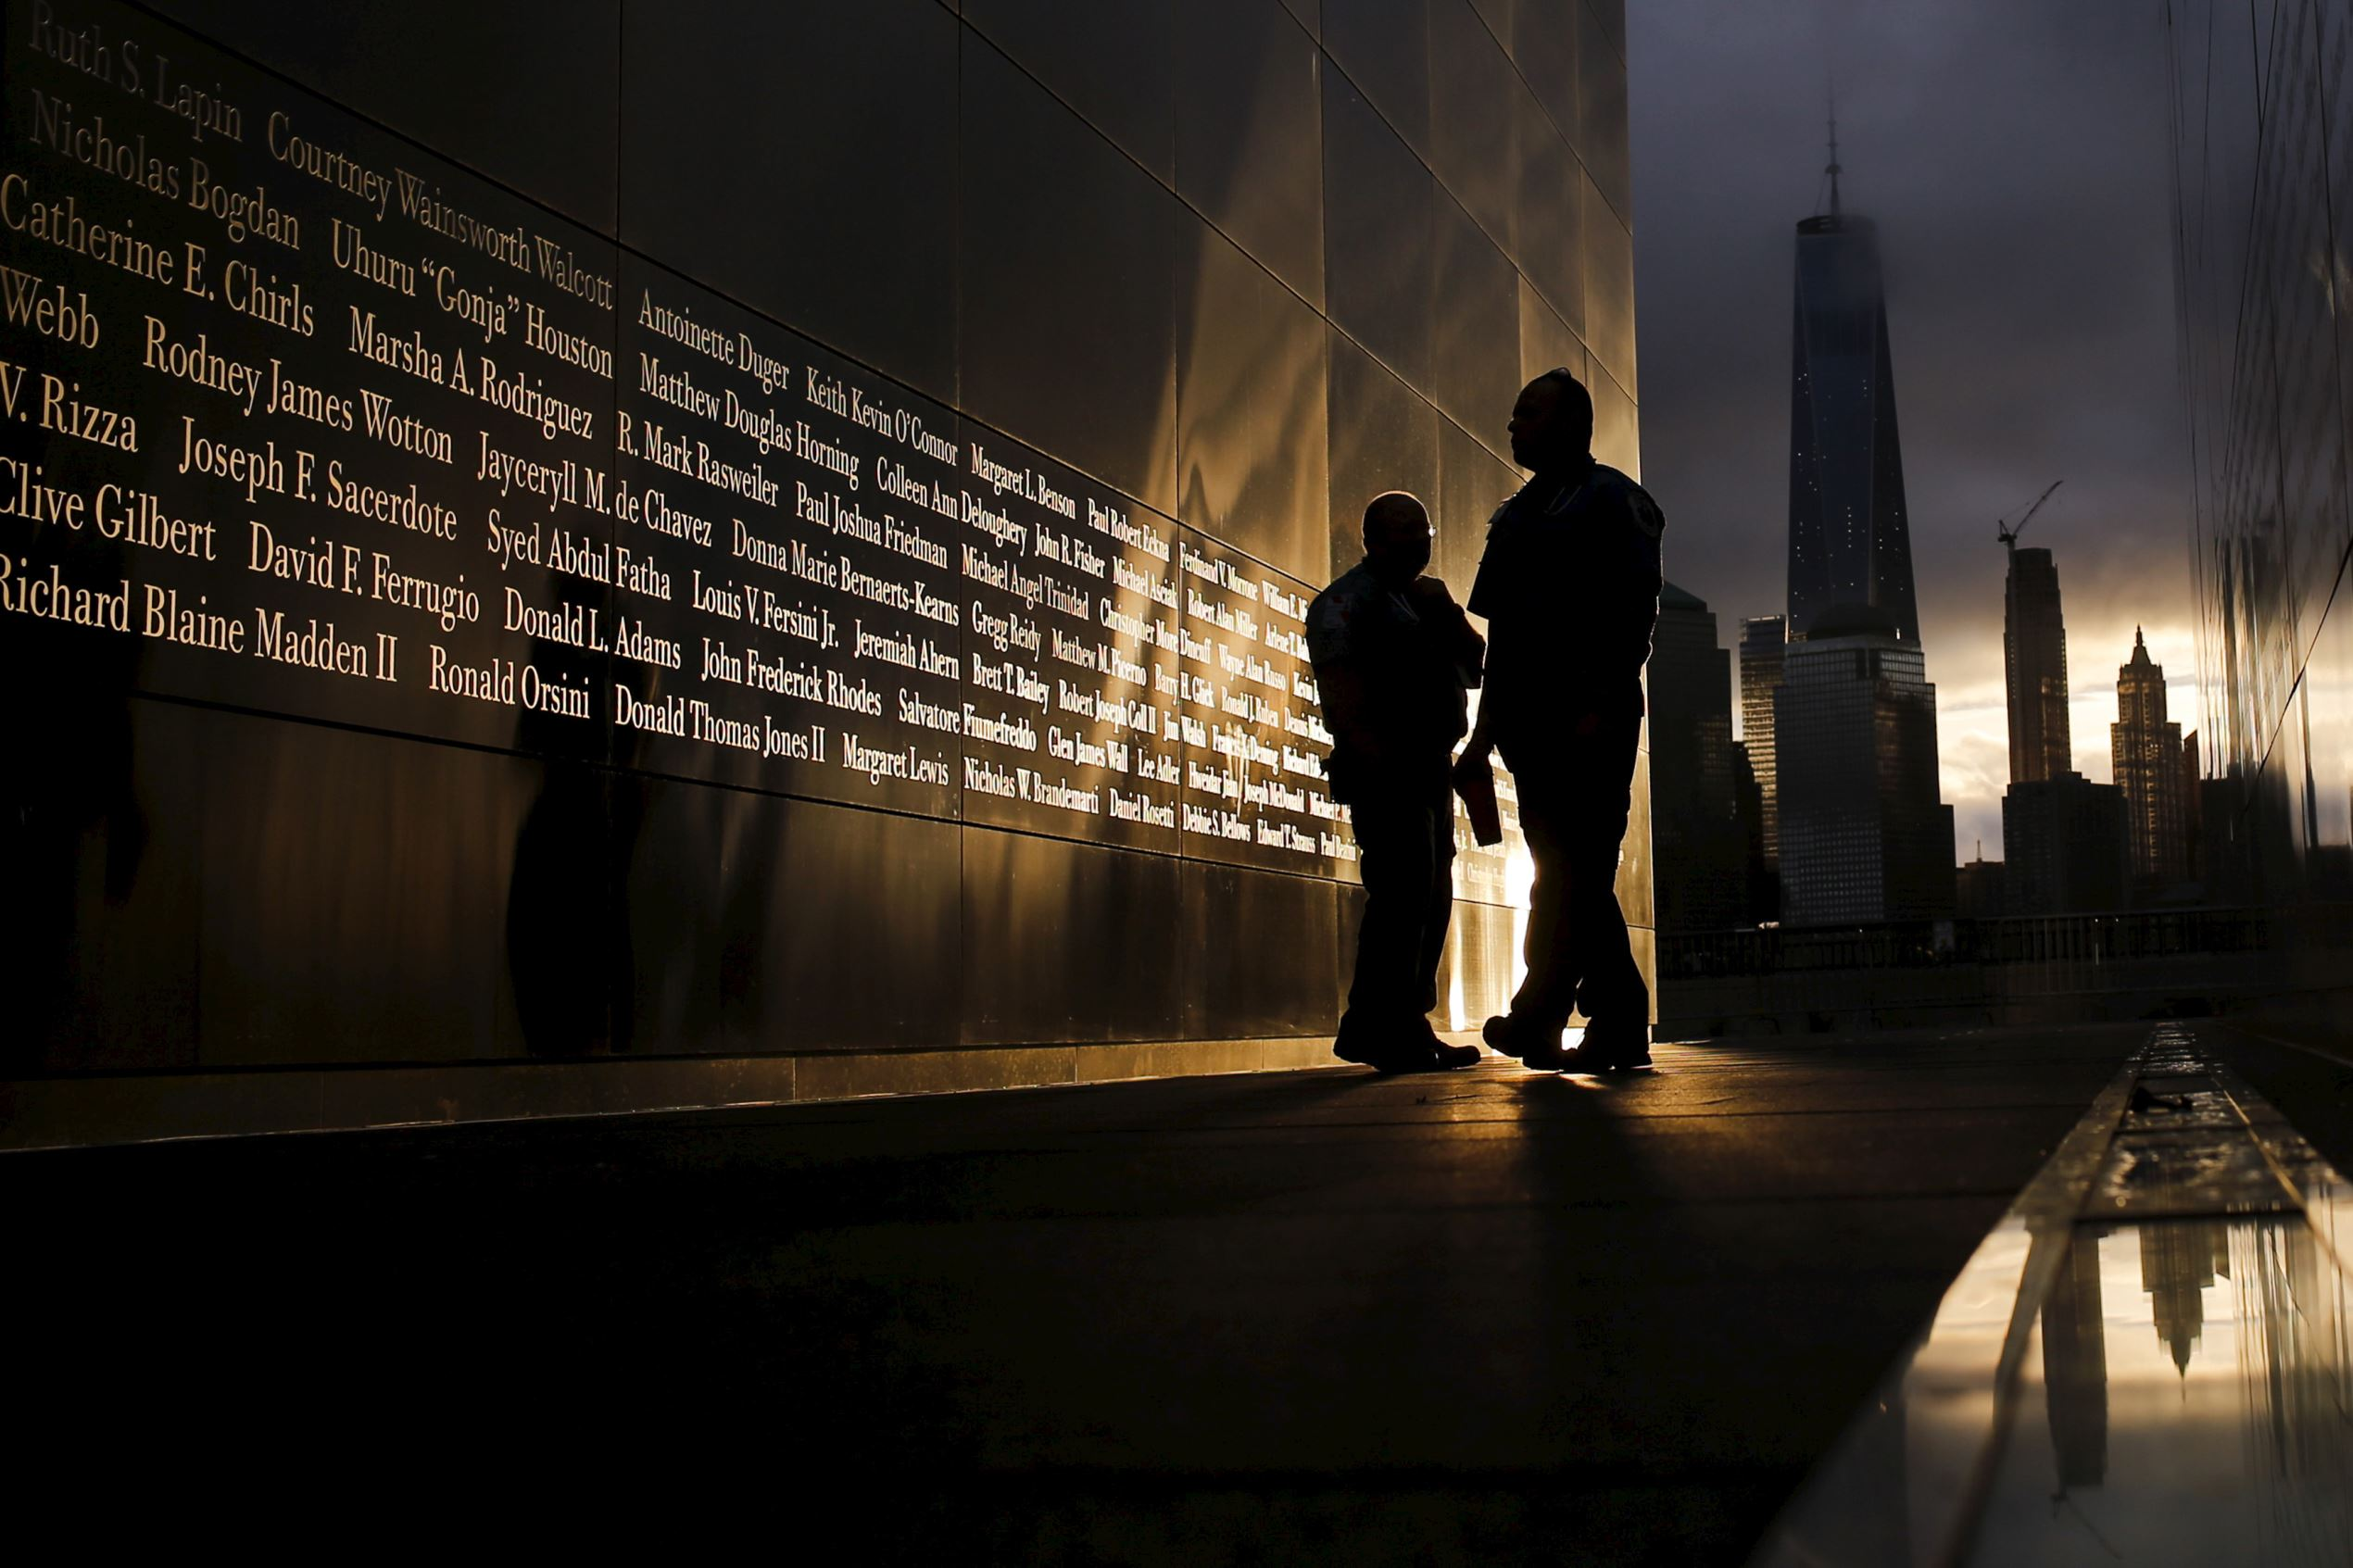 People read victims' names at the 9/11 Empty Sky memorial at sunrise in Liberty State Park in Jersey City, N.J., on September 11, 2015.